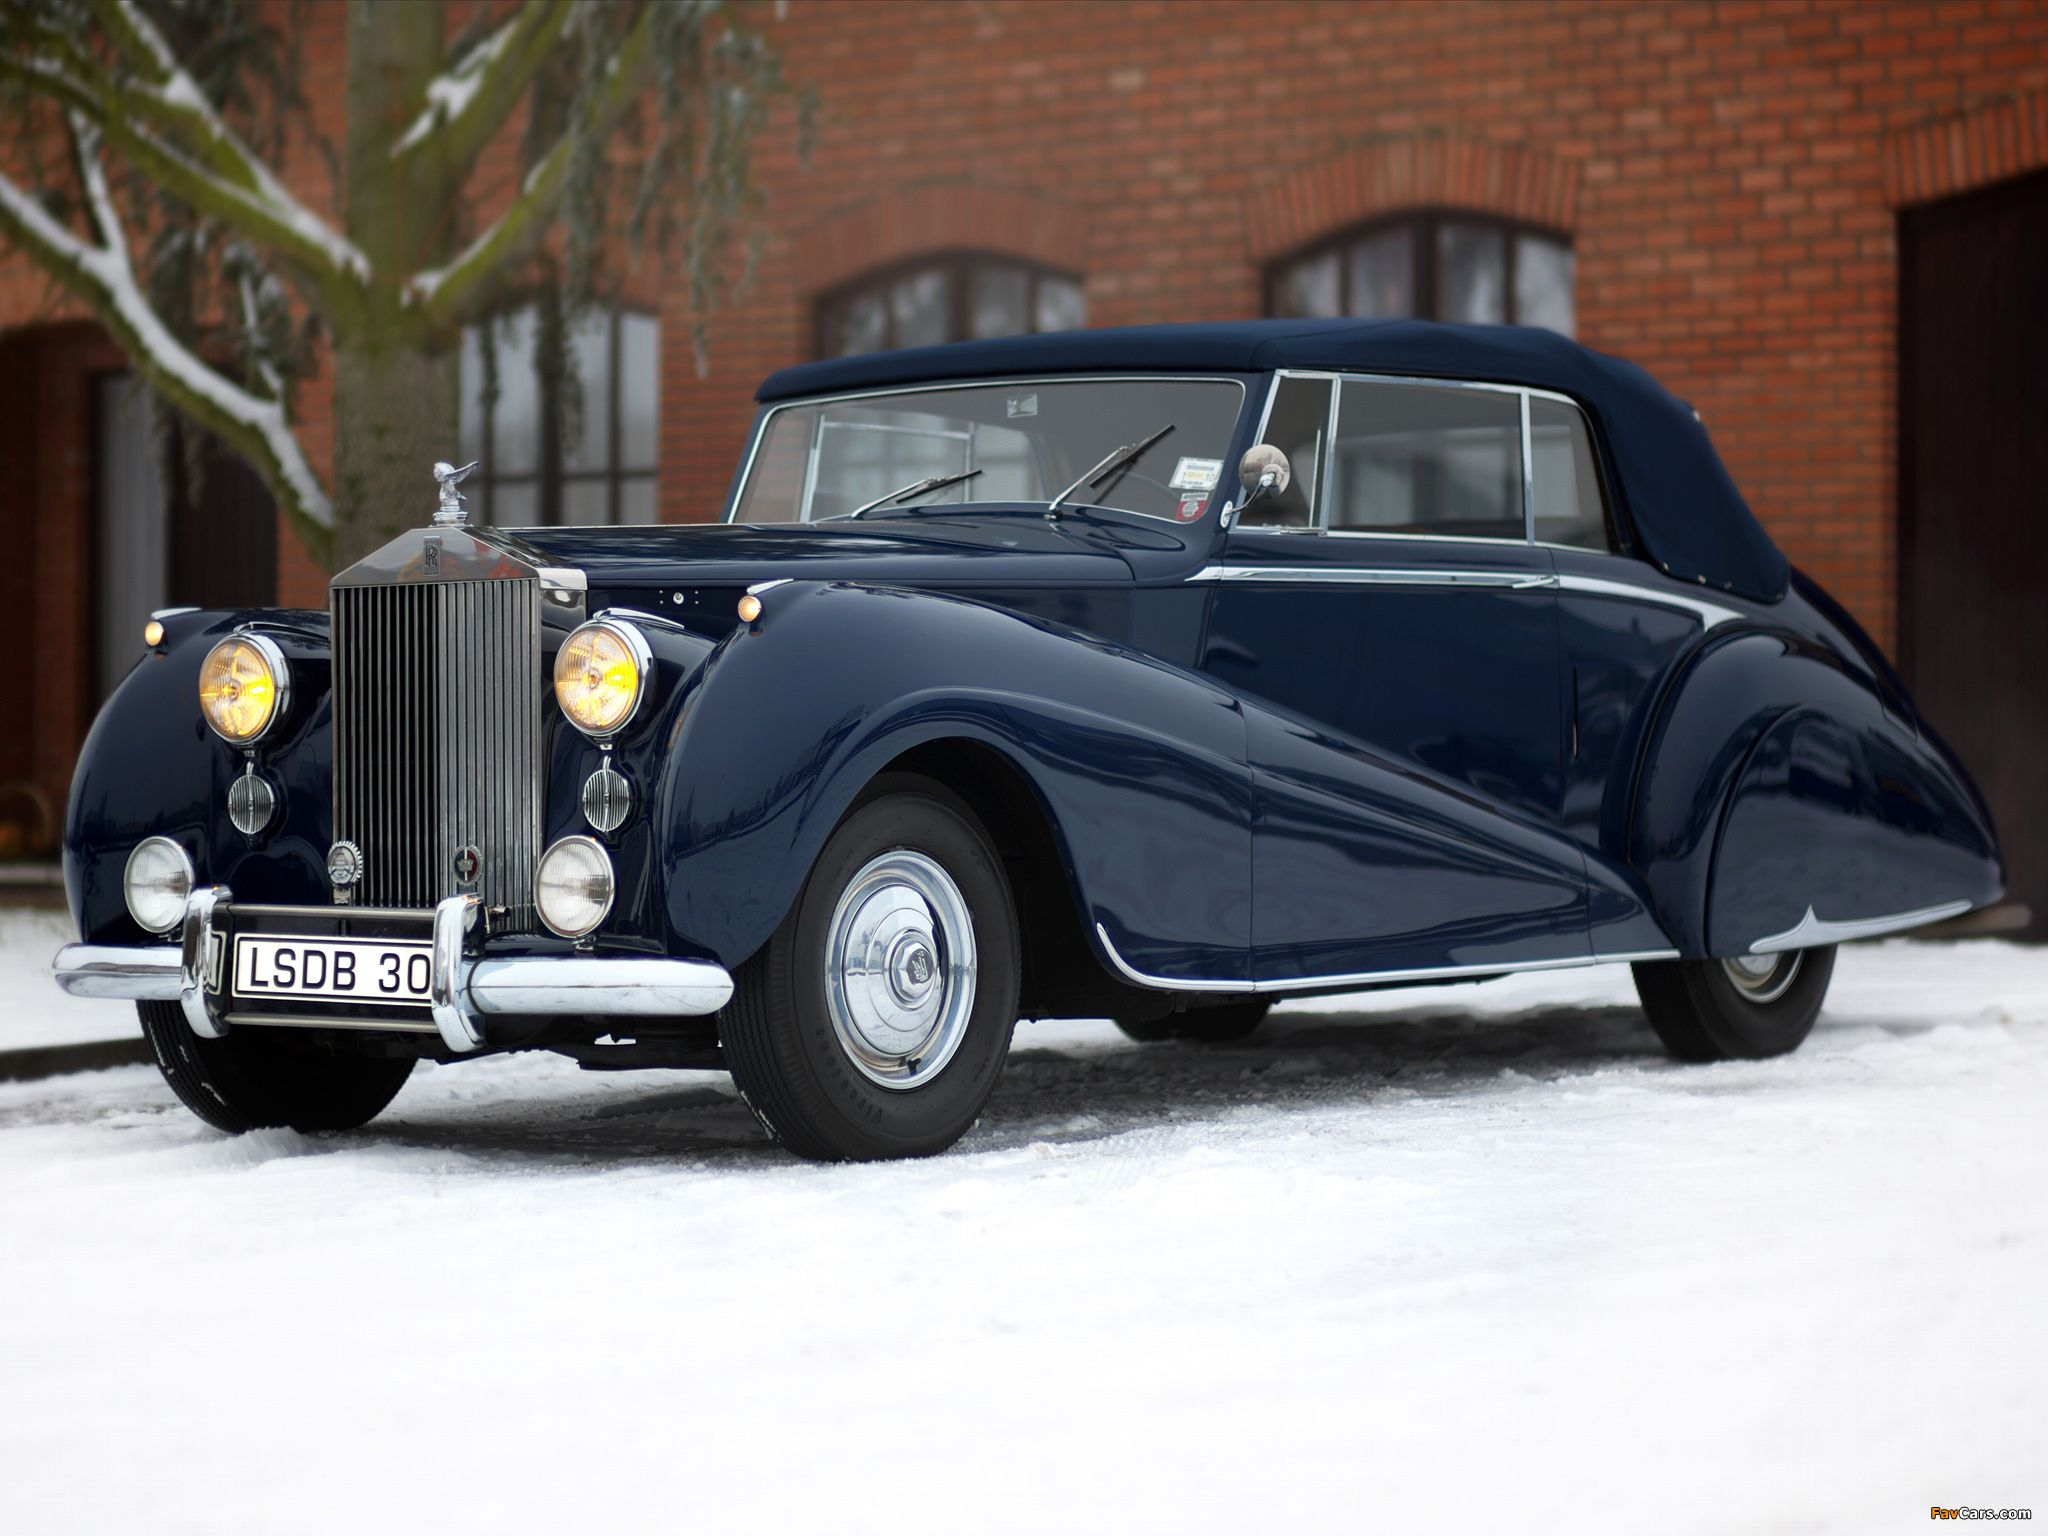 Rolls Royce Silver Dawn Drophead Coupe By Park Ward 1950 Rolls Royce Classic Rolls Royce Rolls Royce Cars